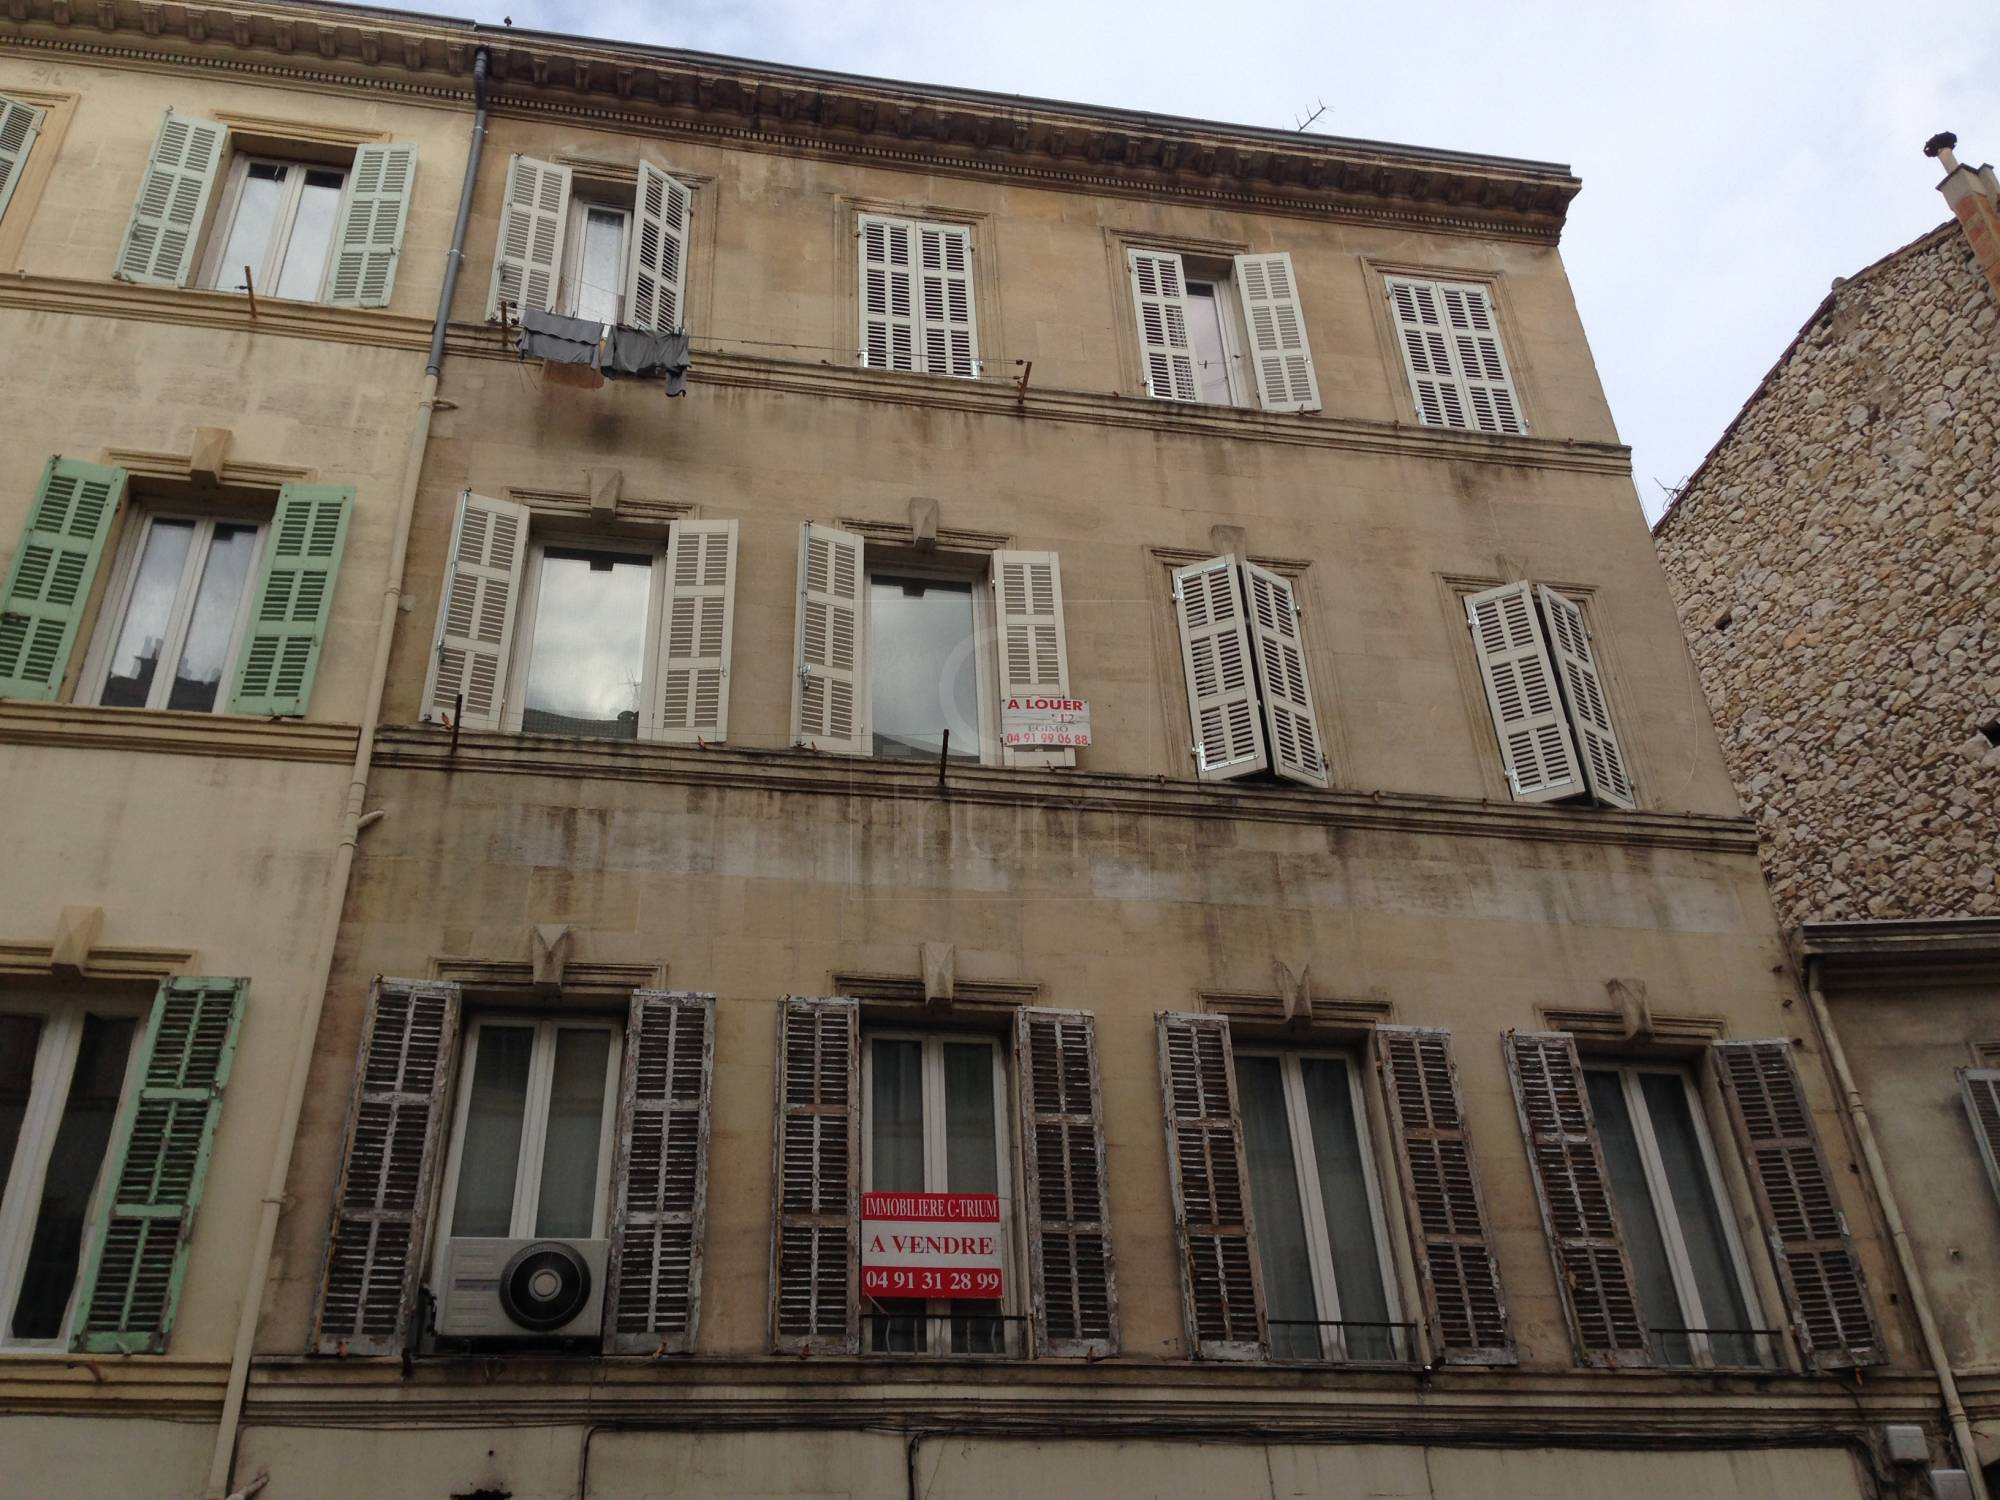 Vente appartement t2 f2 marseille 7eme endoume st lambert for T2 marseille